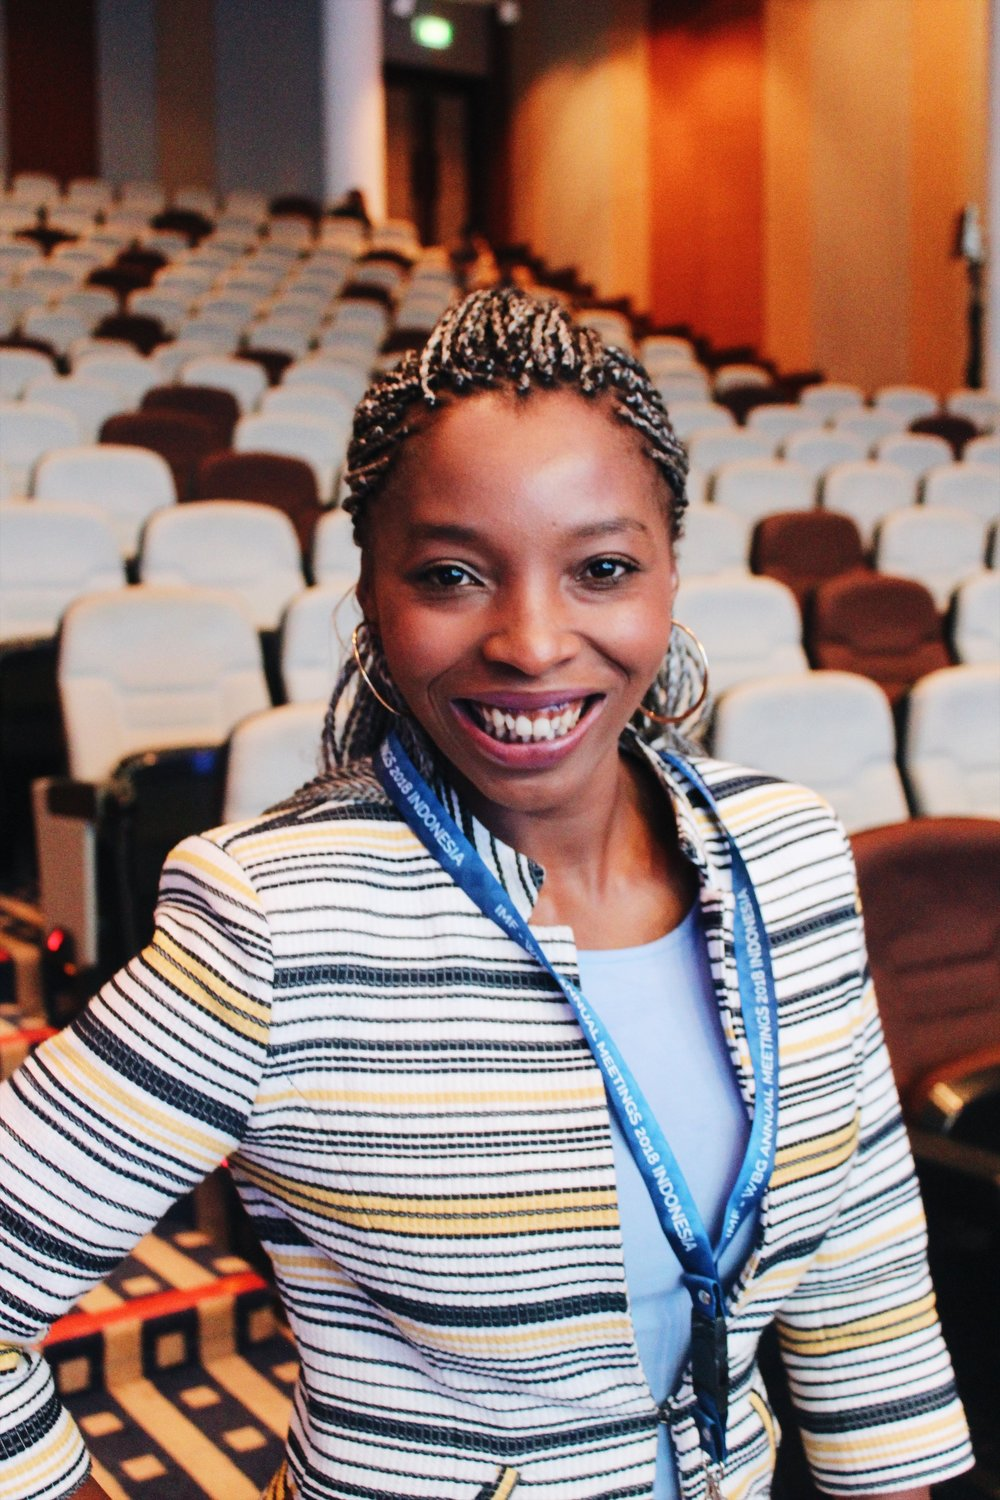 Anele Mkuzo-Magape, Founder of African Entrepreneurship Initiative, South Africa